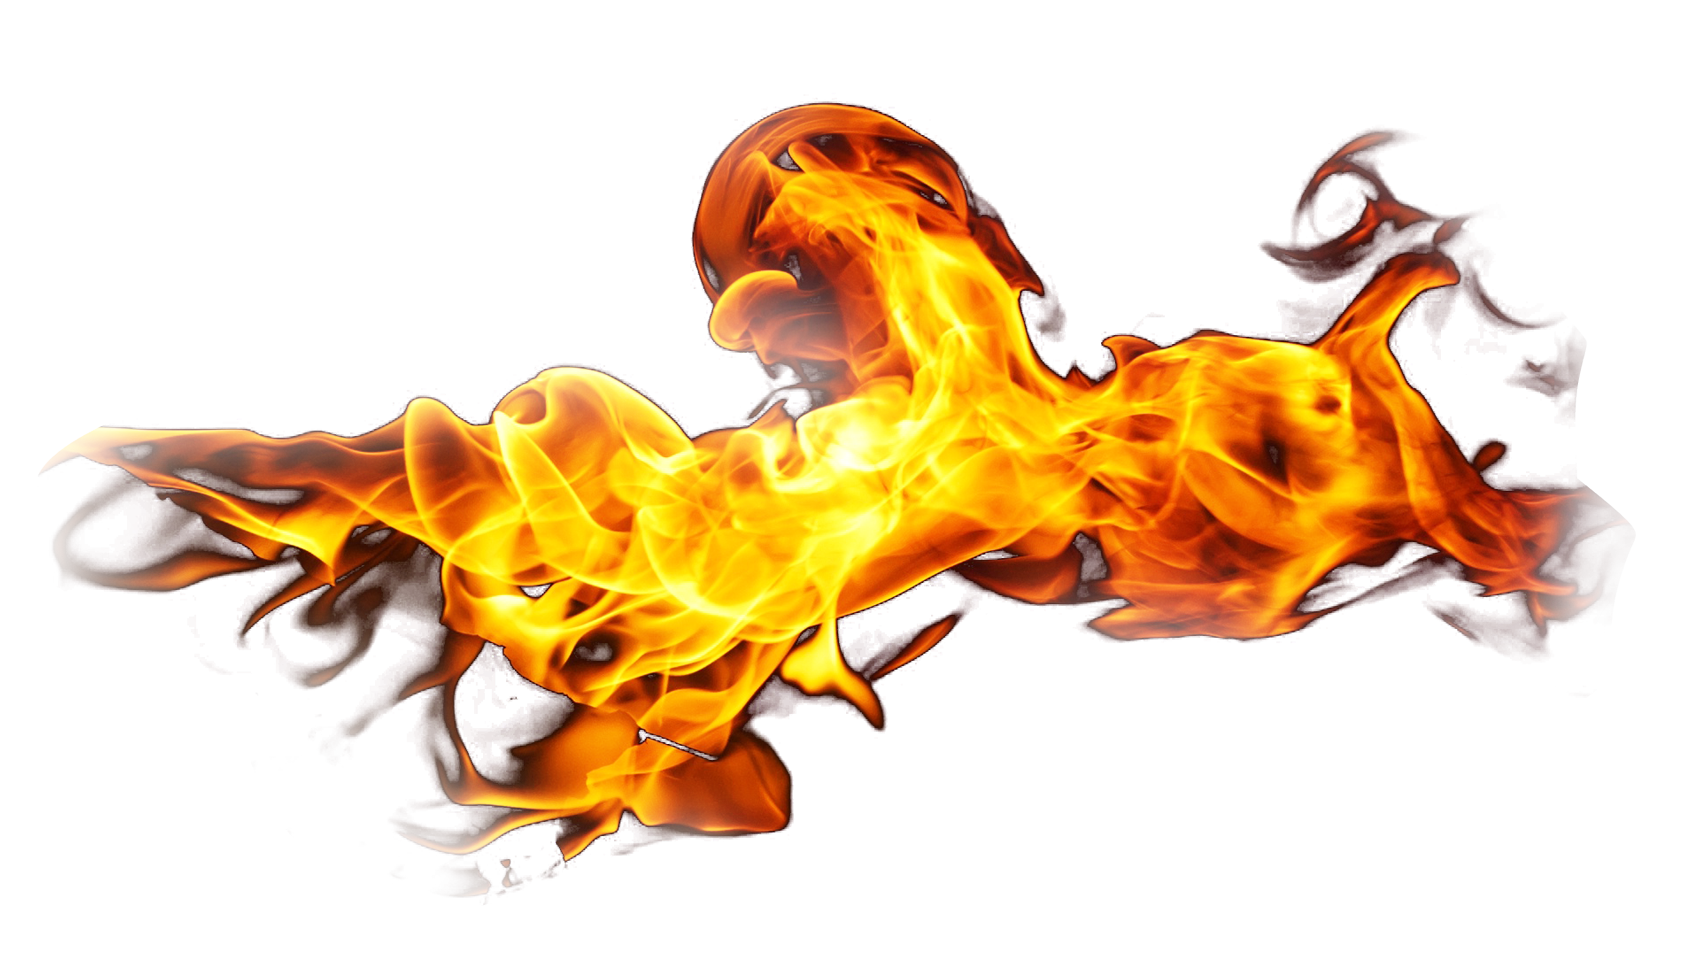 Big Explosion Png Png Image Purepng: Fire Flame PNG Image - PurePNG